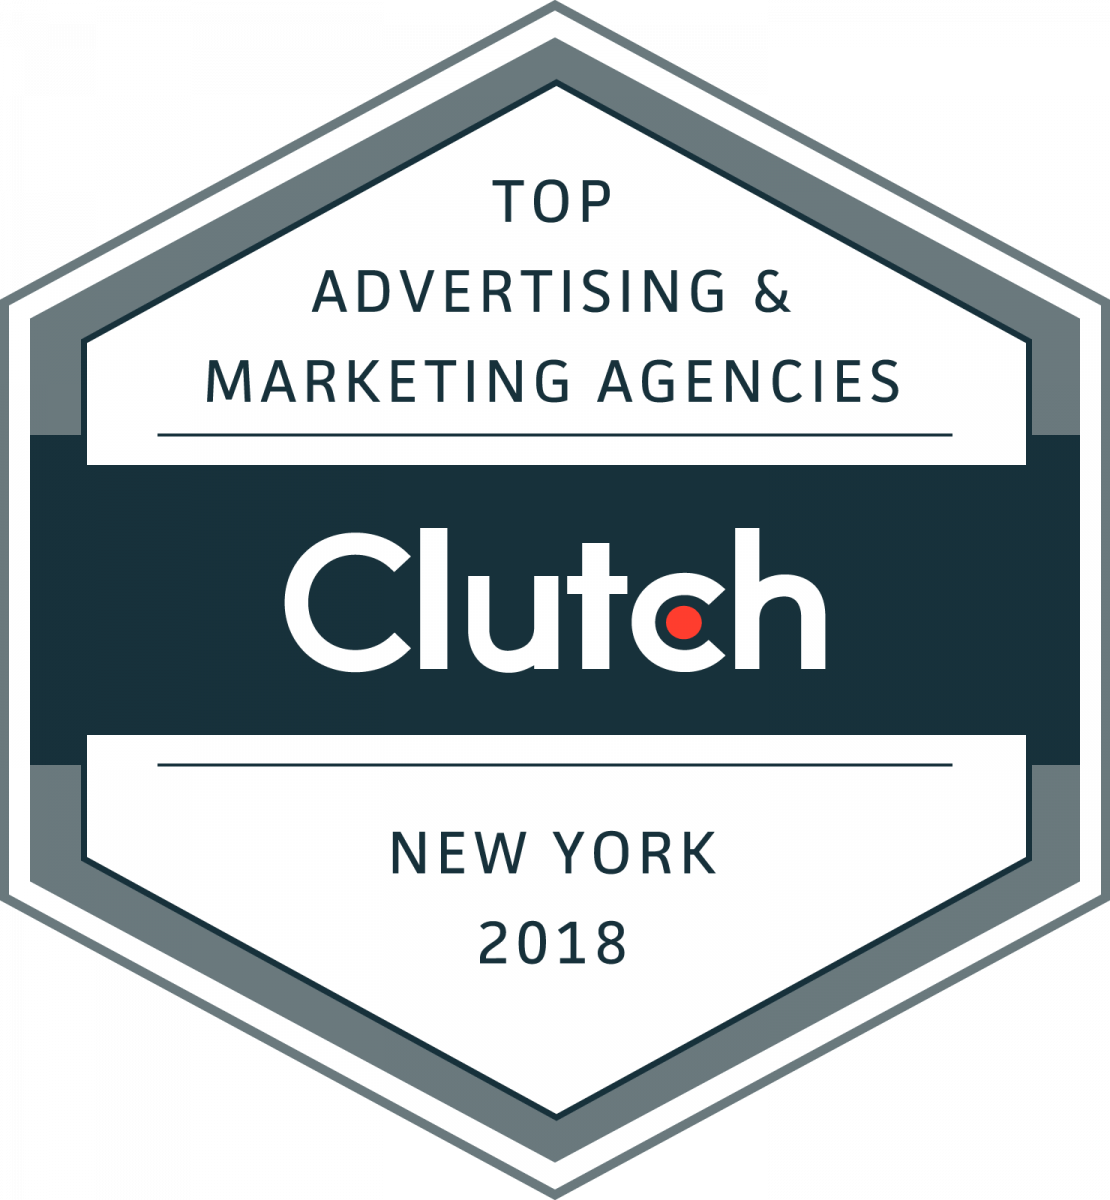 Top Advertising & Marketing Agencies, New York